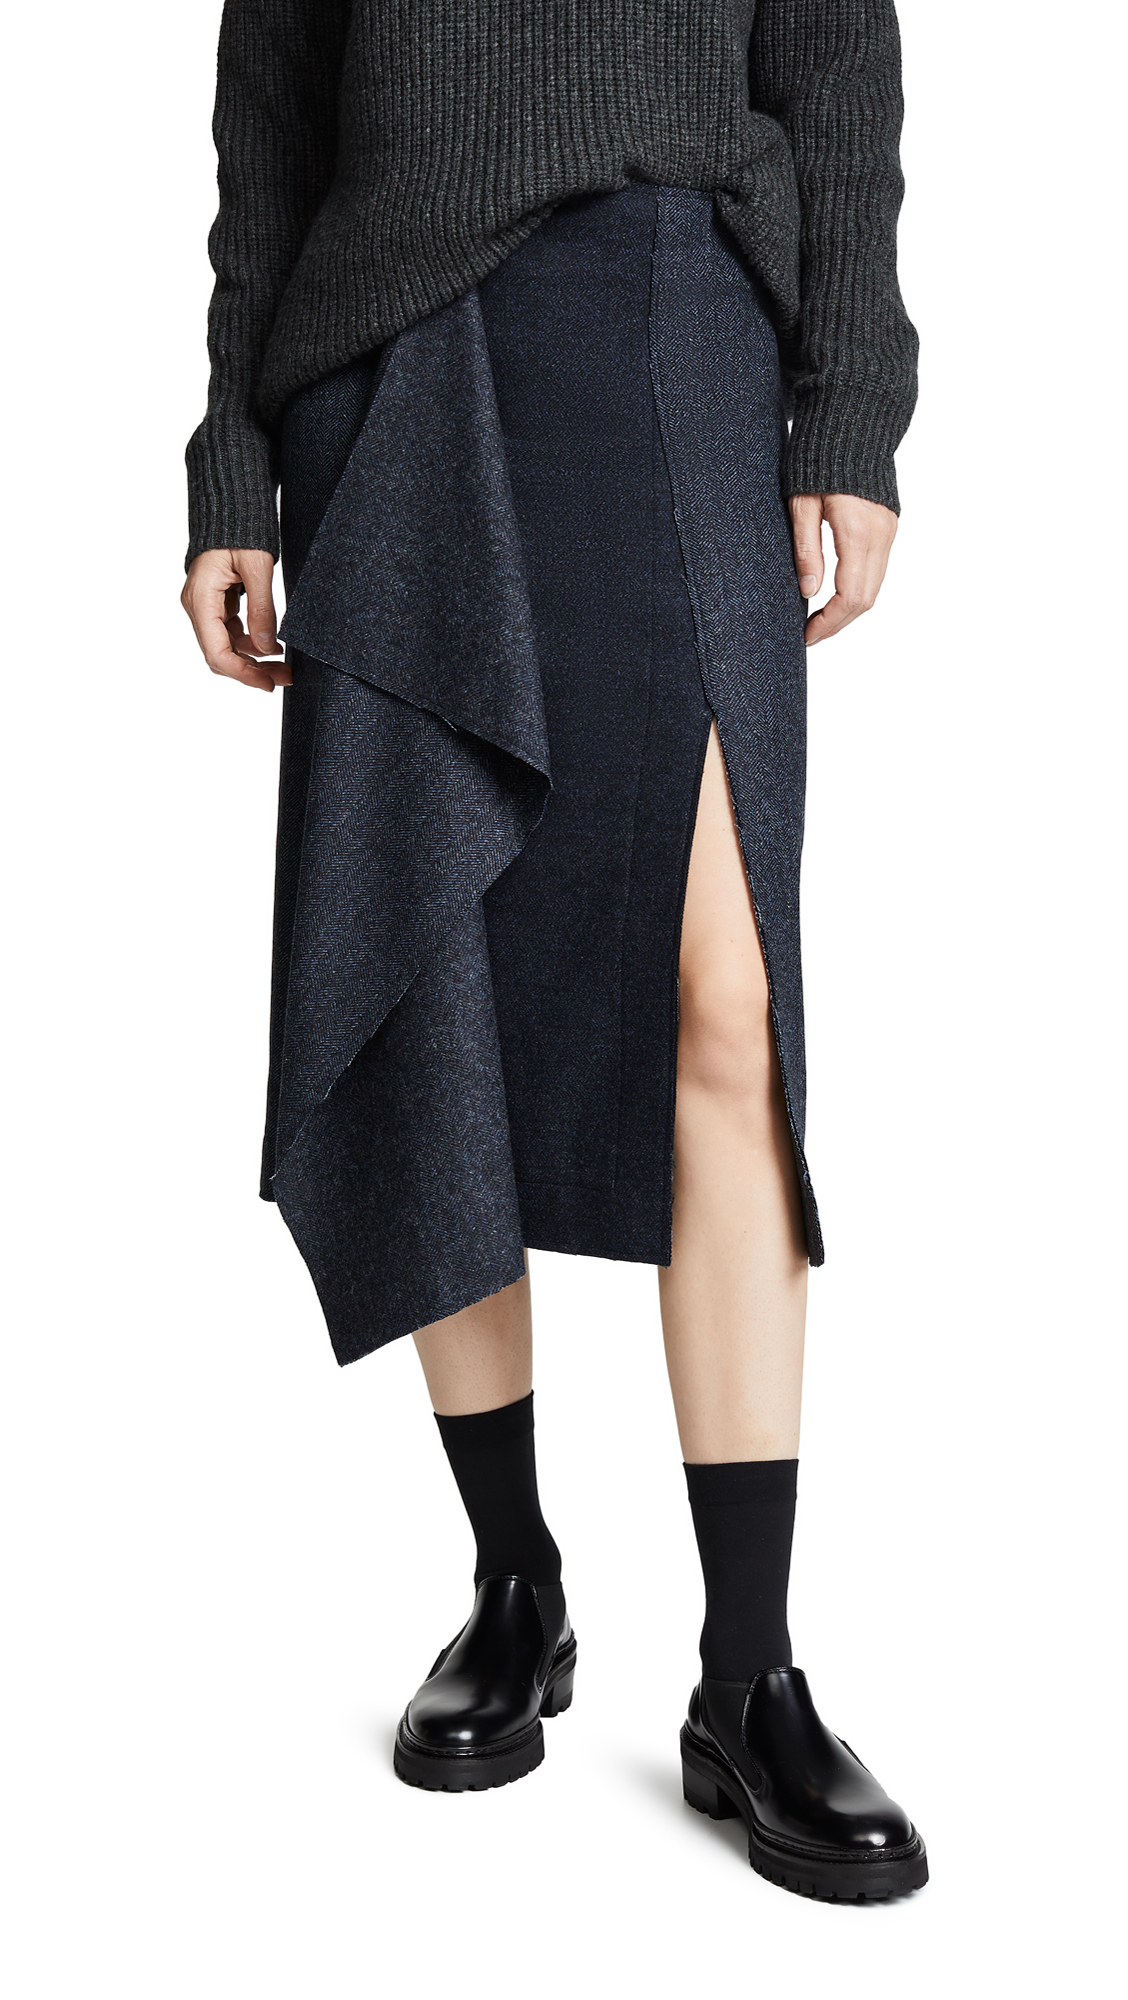 Cedric Charlier Asymmetric Skirt - Fantasy Print/Light Blue